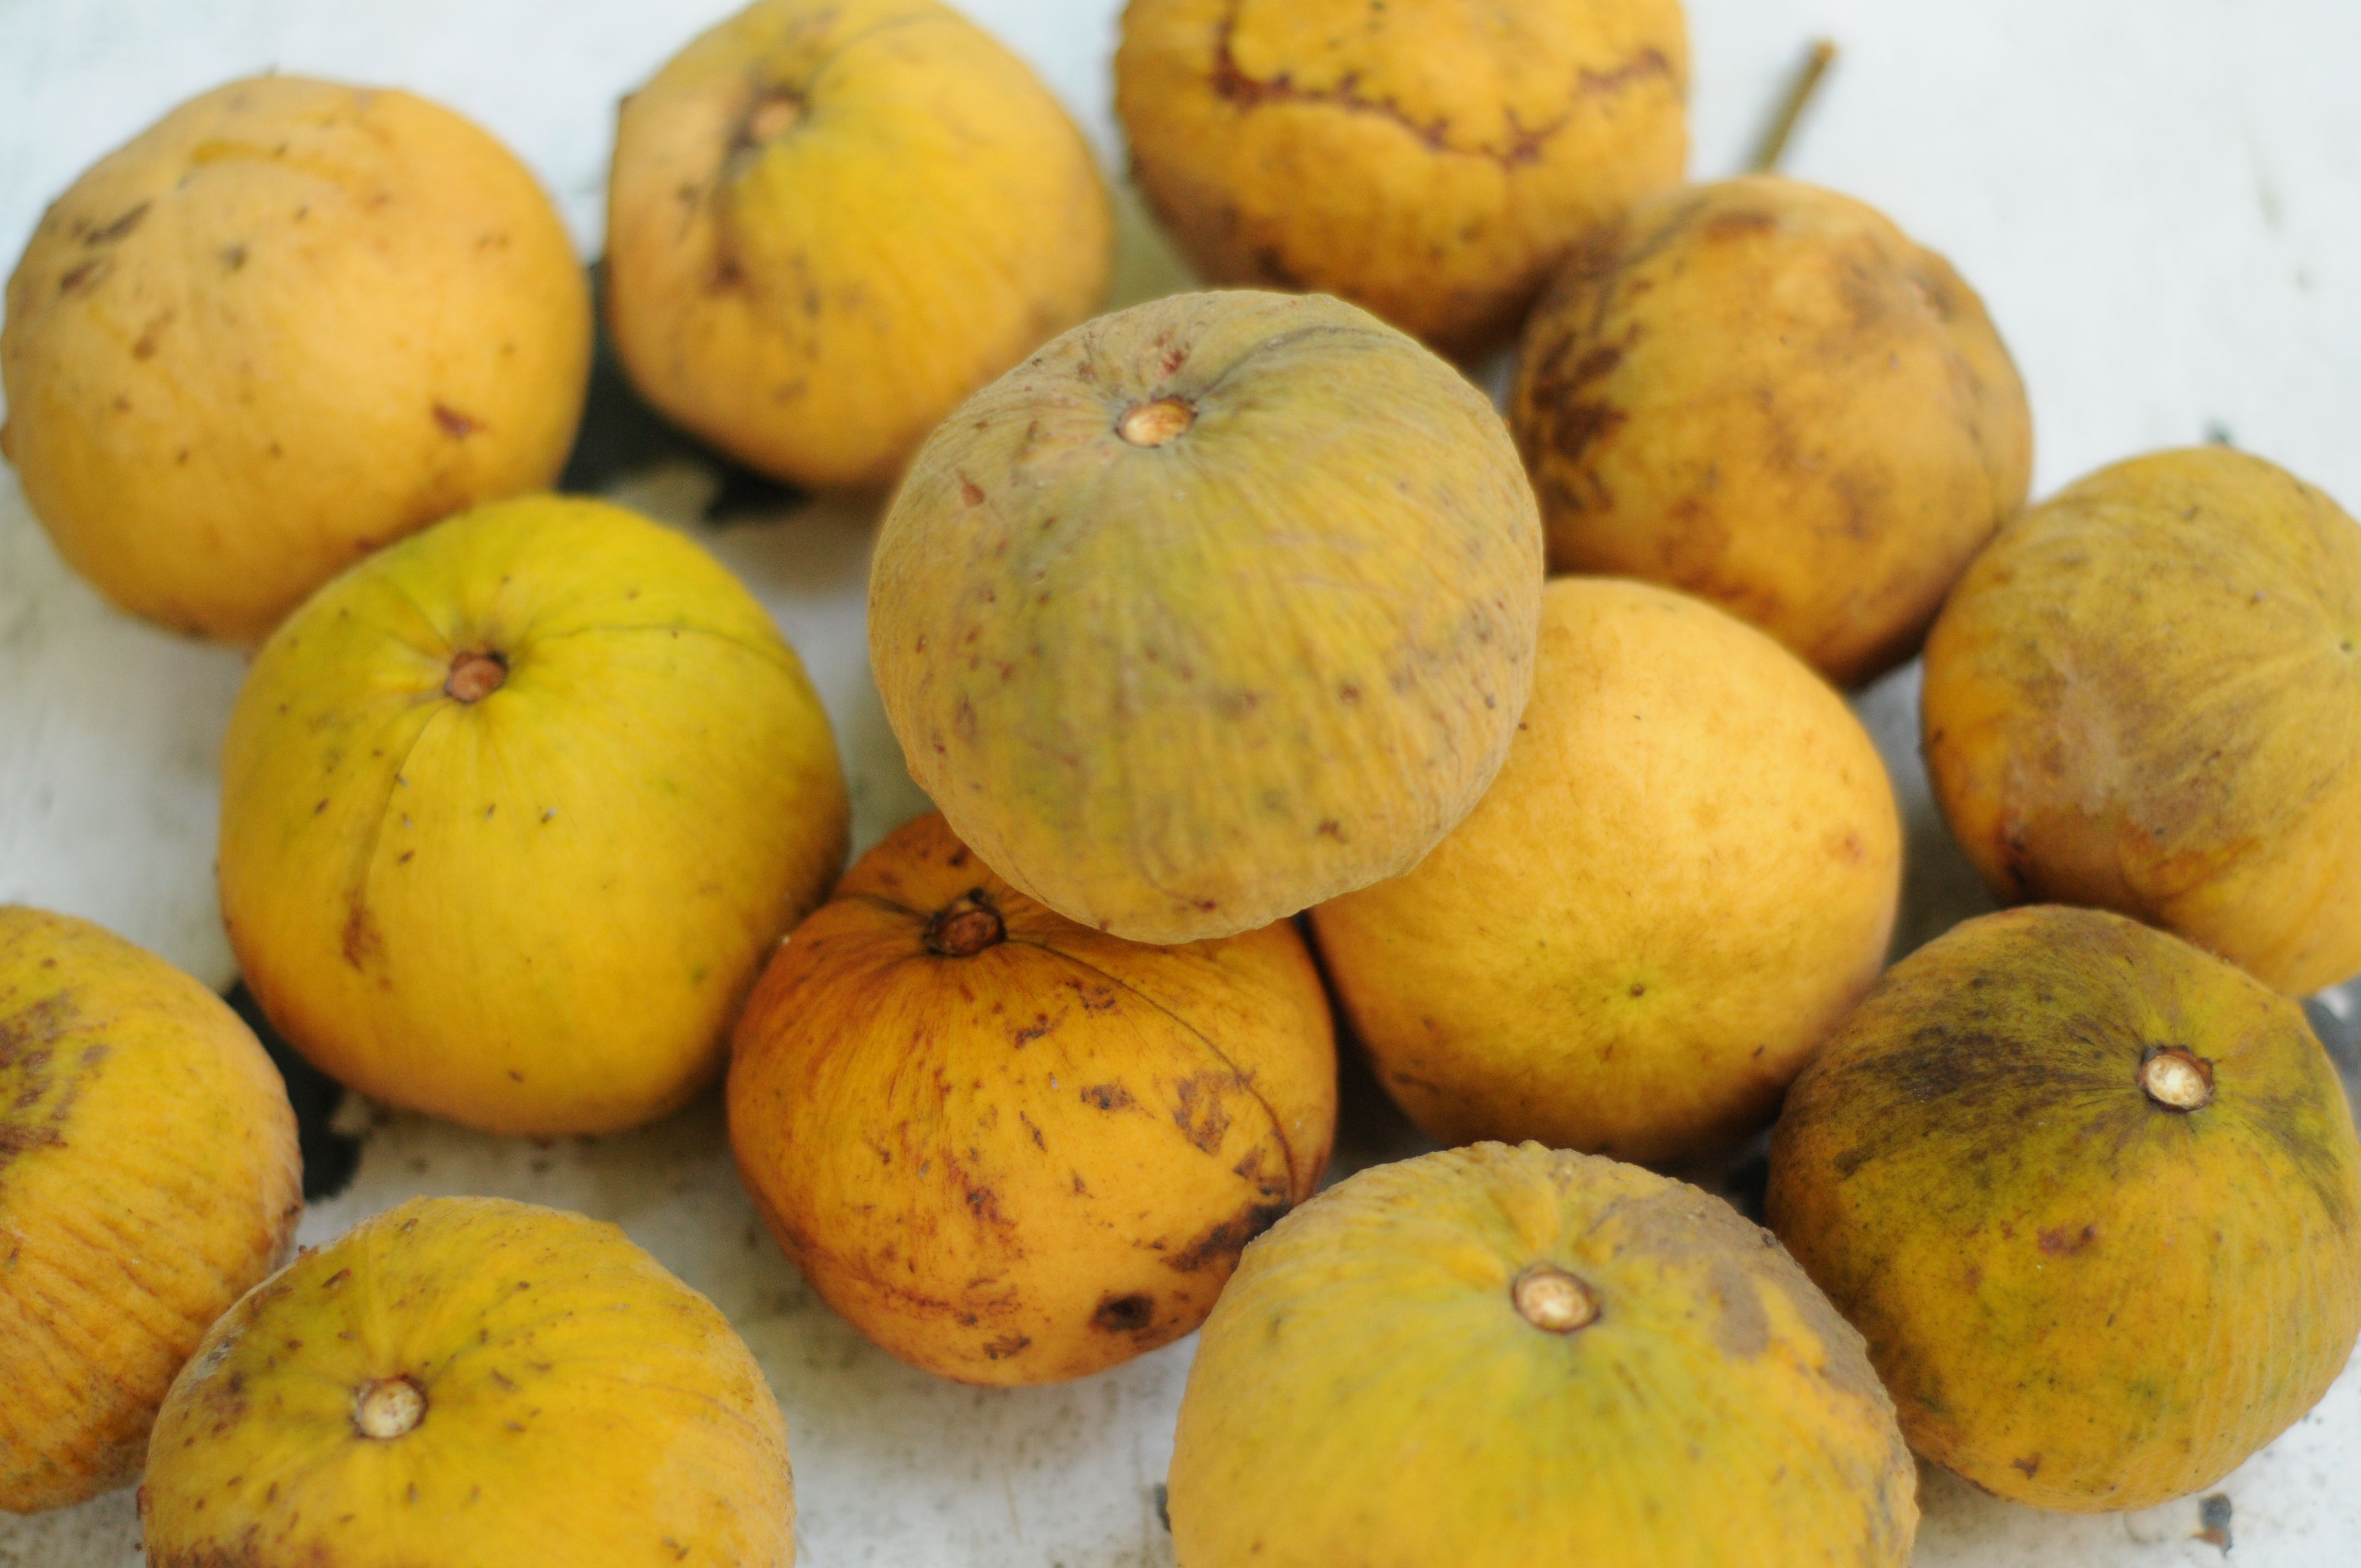 santol fruit from the philippines Fruit, Filipino, Food